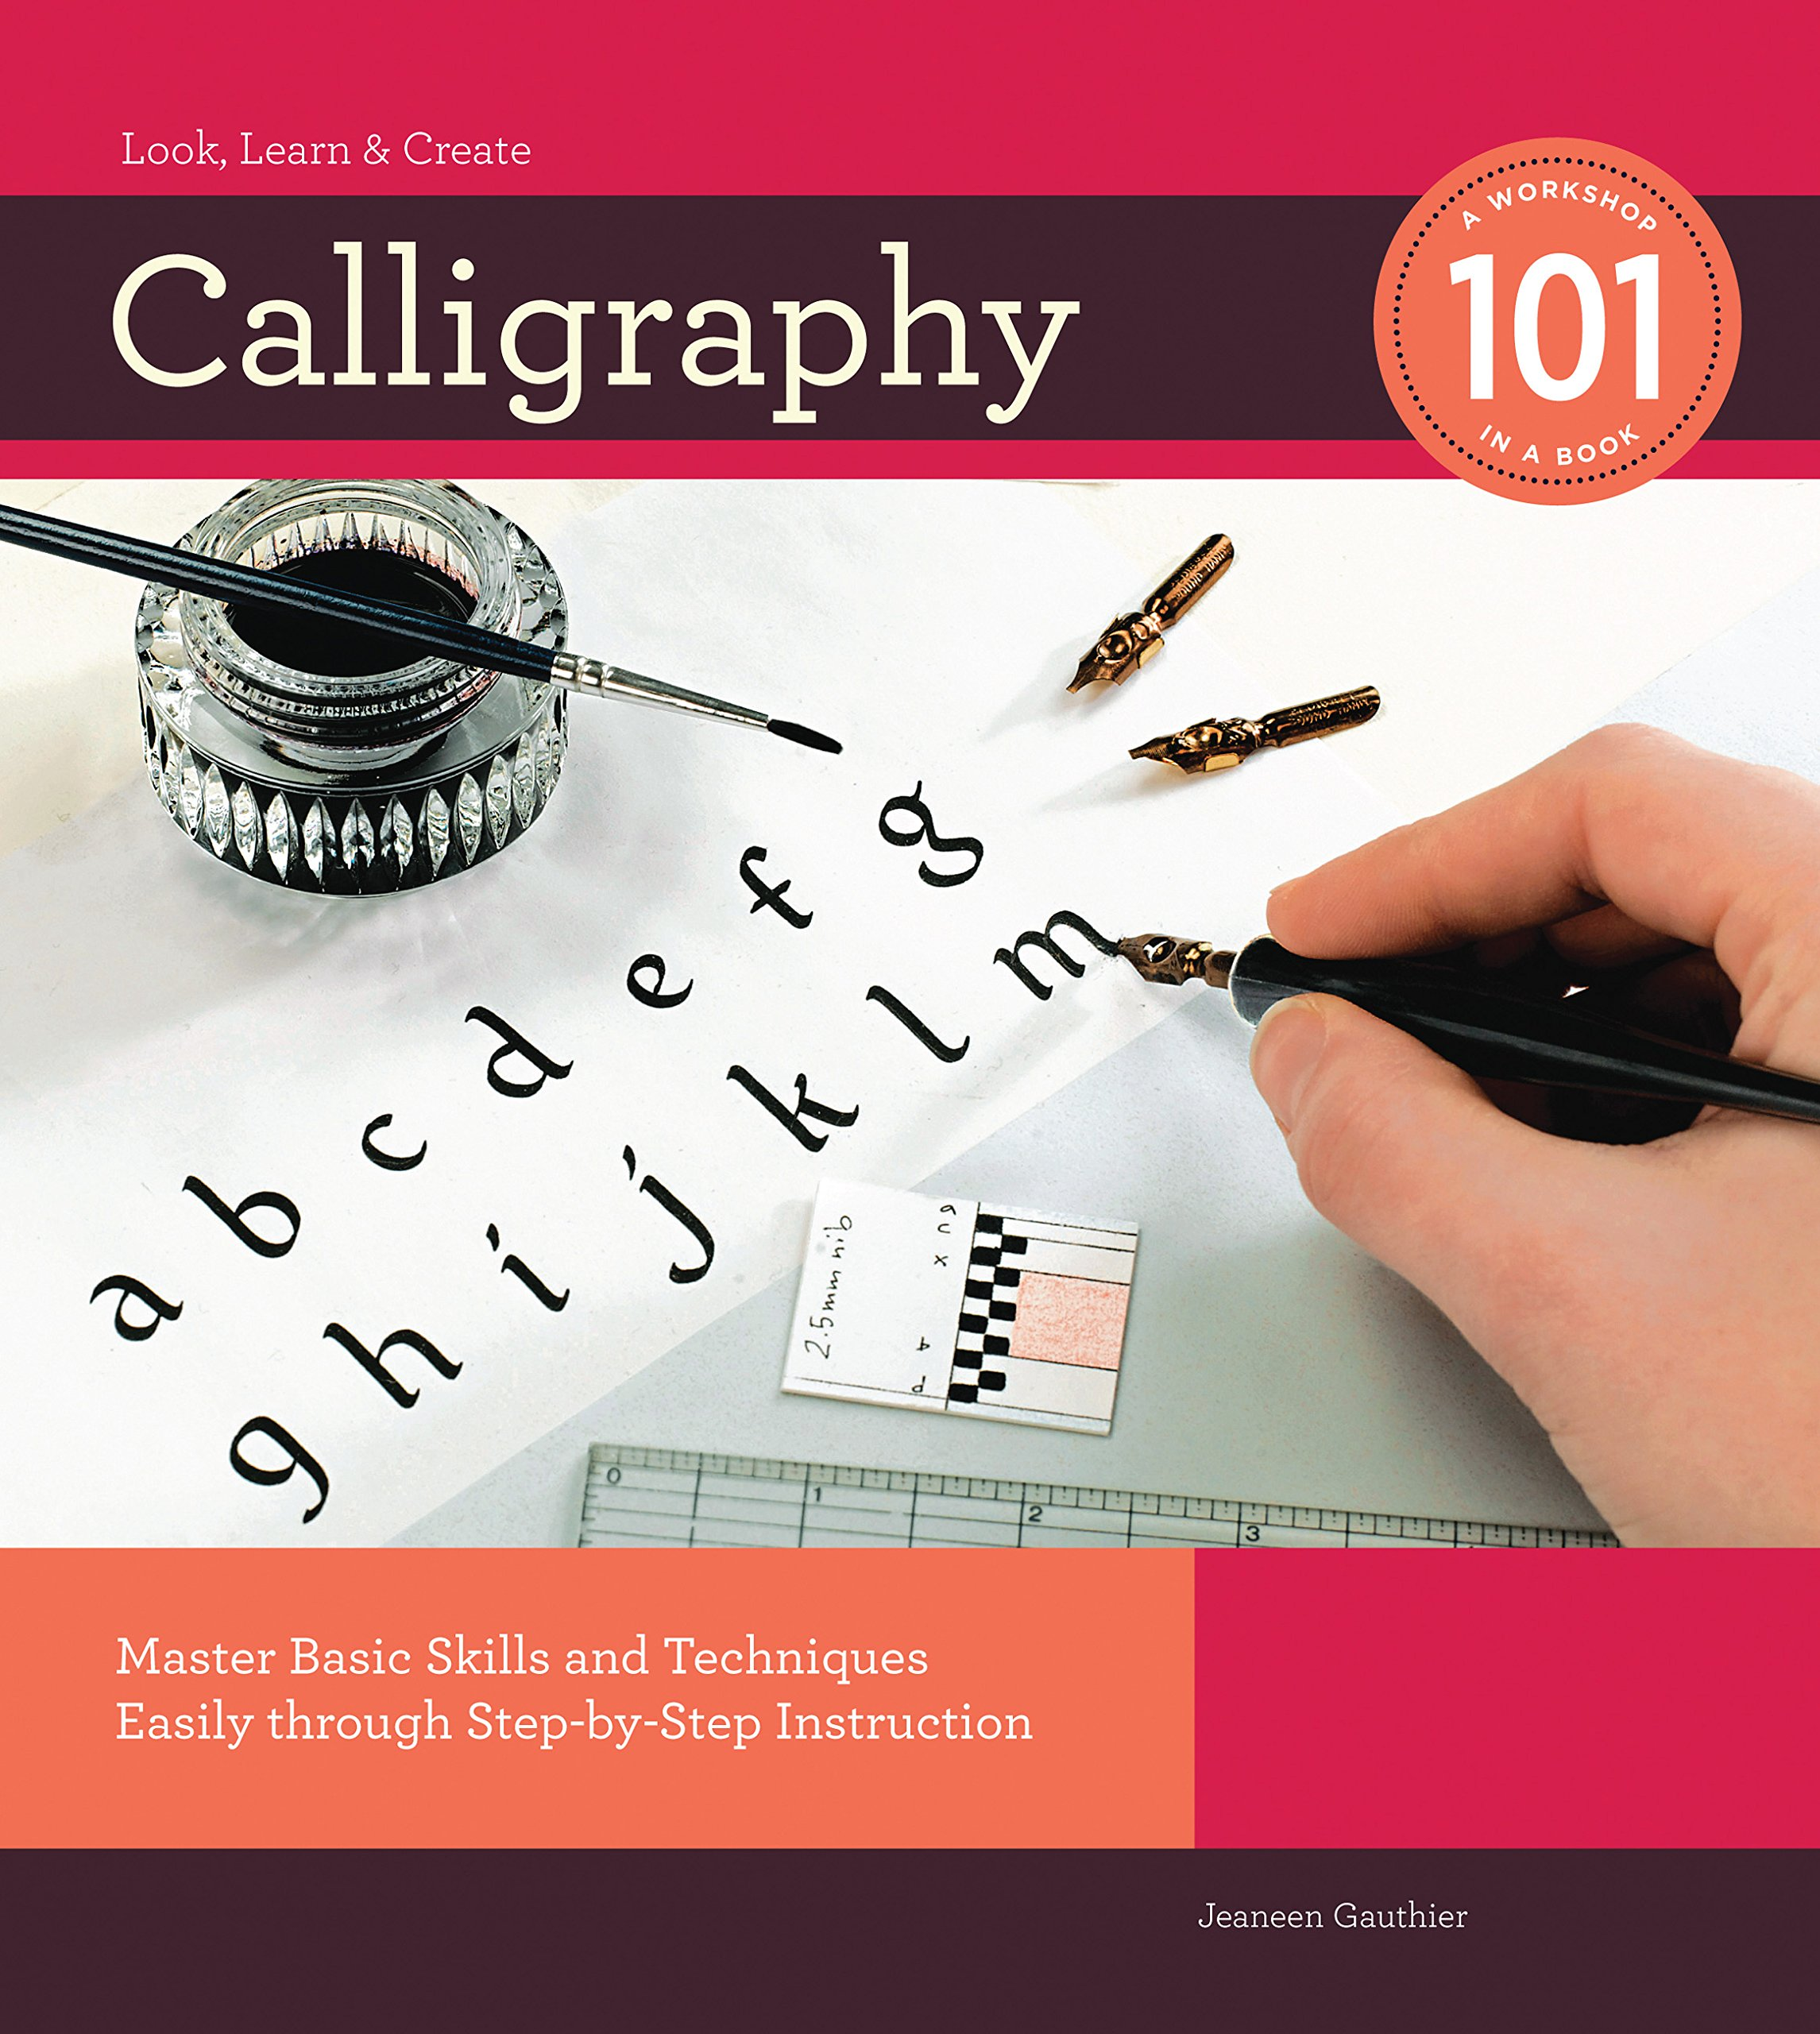 Calligraphy 101: Master Basic Skills and Techniques Easily through Step-by-Step  Instruction: Jeaneen Gauthier: 9781589235038: Amazon.com: Books